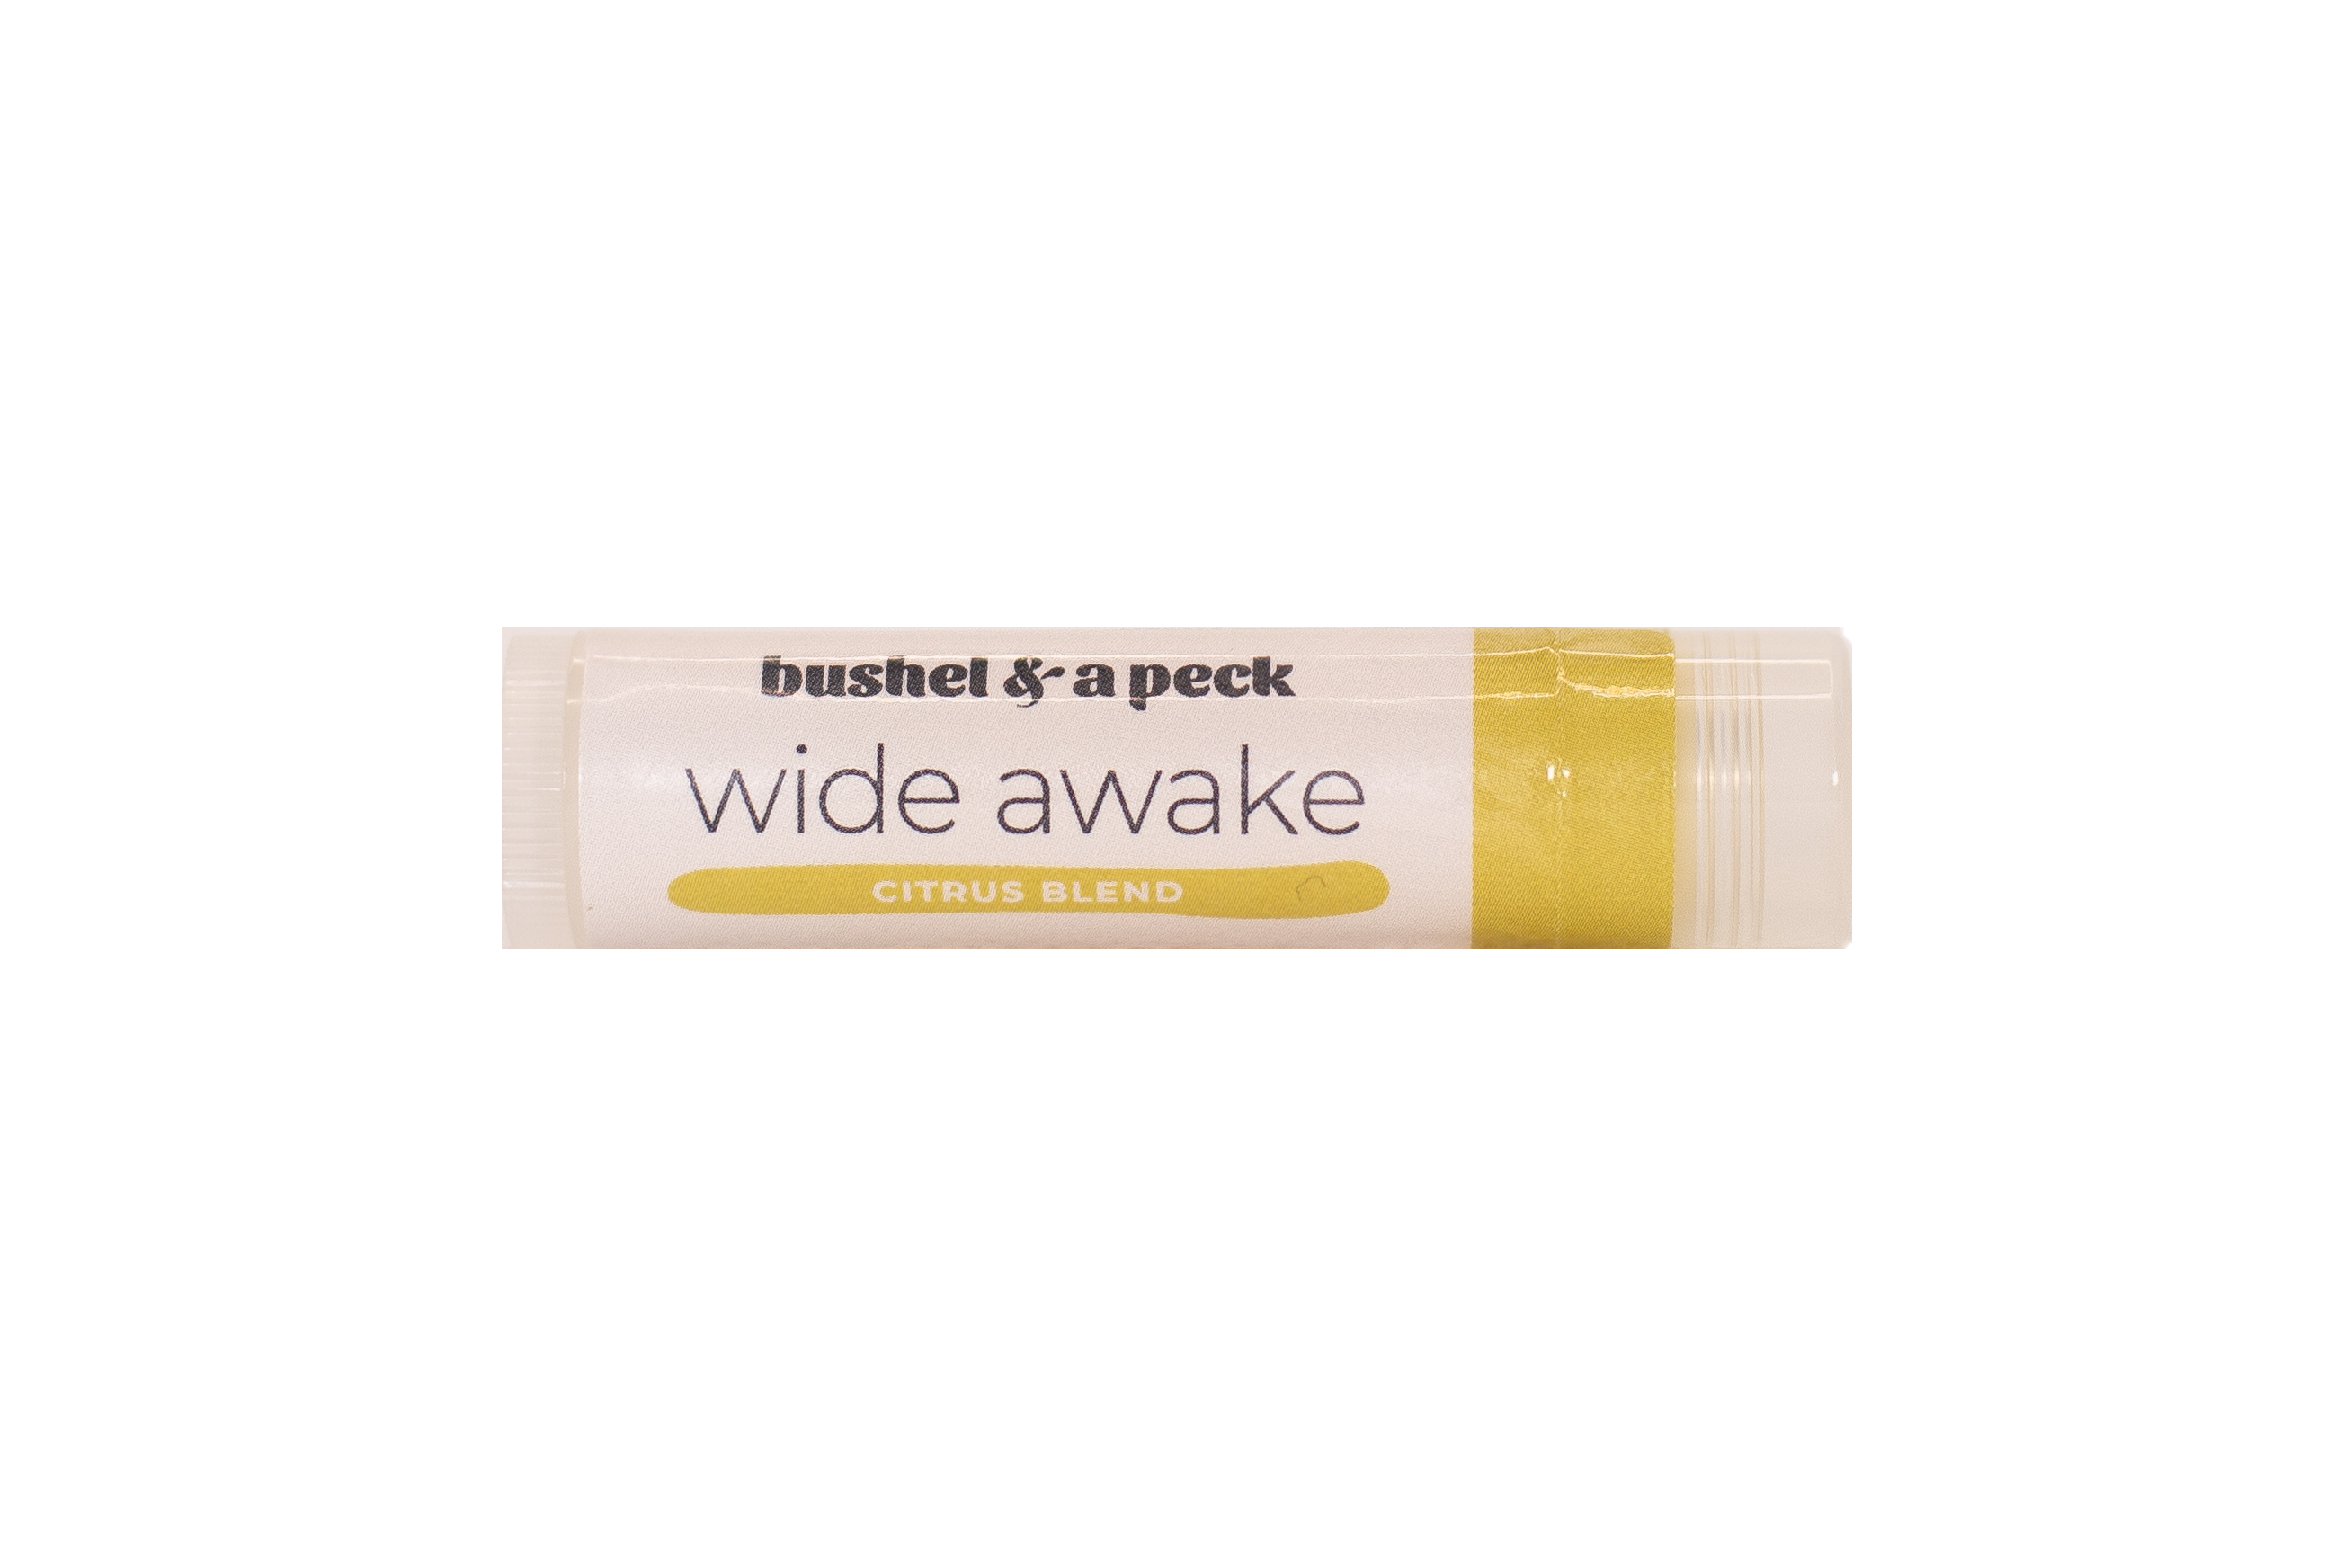 Bushel & a Peck - Wide Awake Lip Balm: Citrus Blend